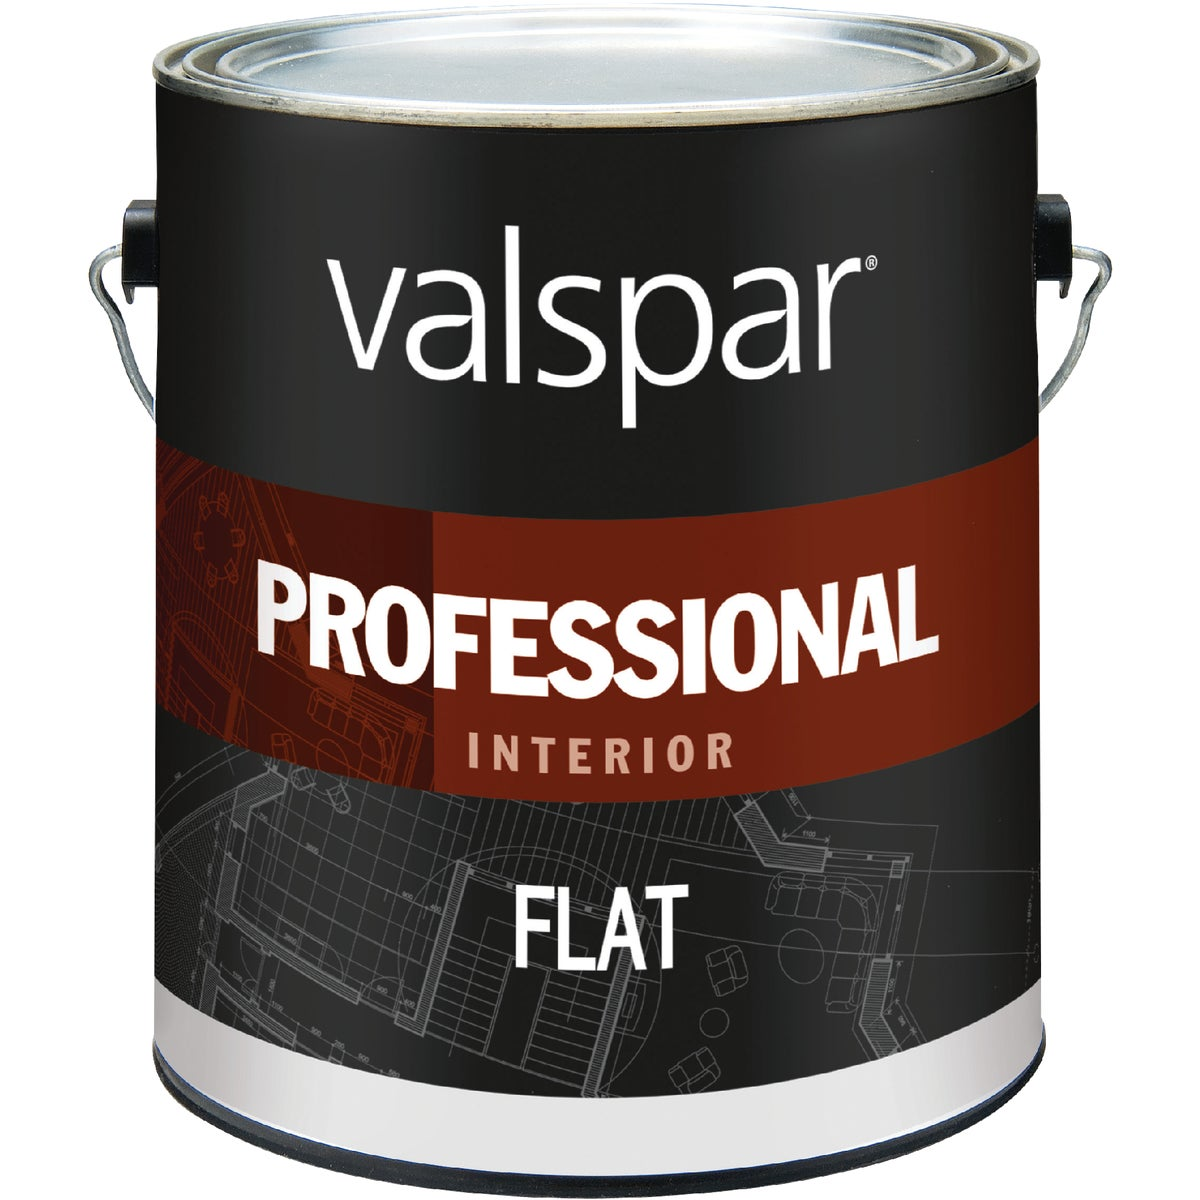 INT FLAT MED BASE PAINT - 045.0011612.007 by Valspar Corp